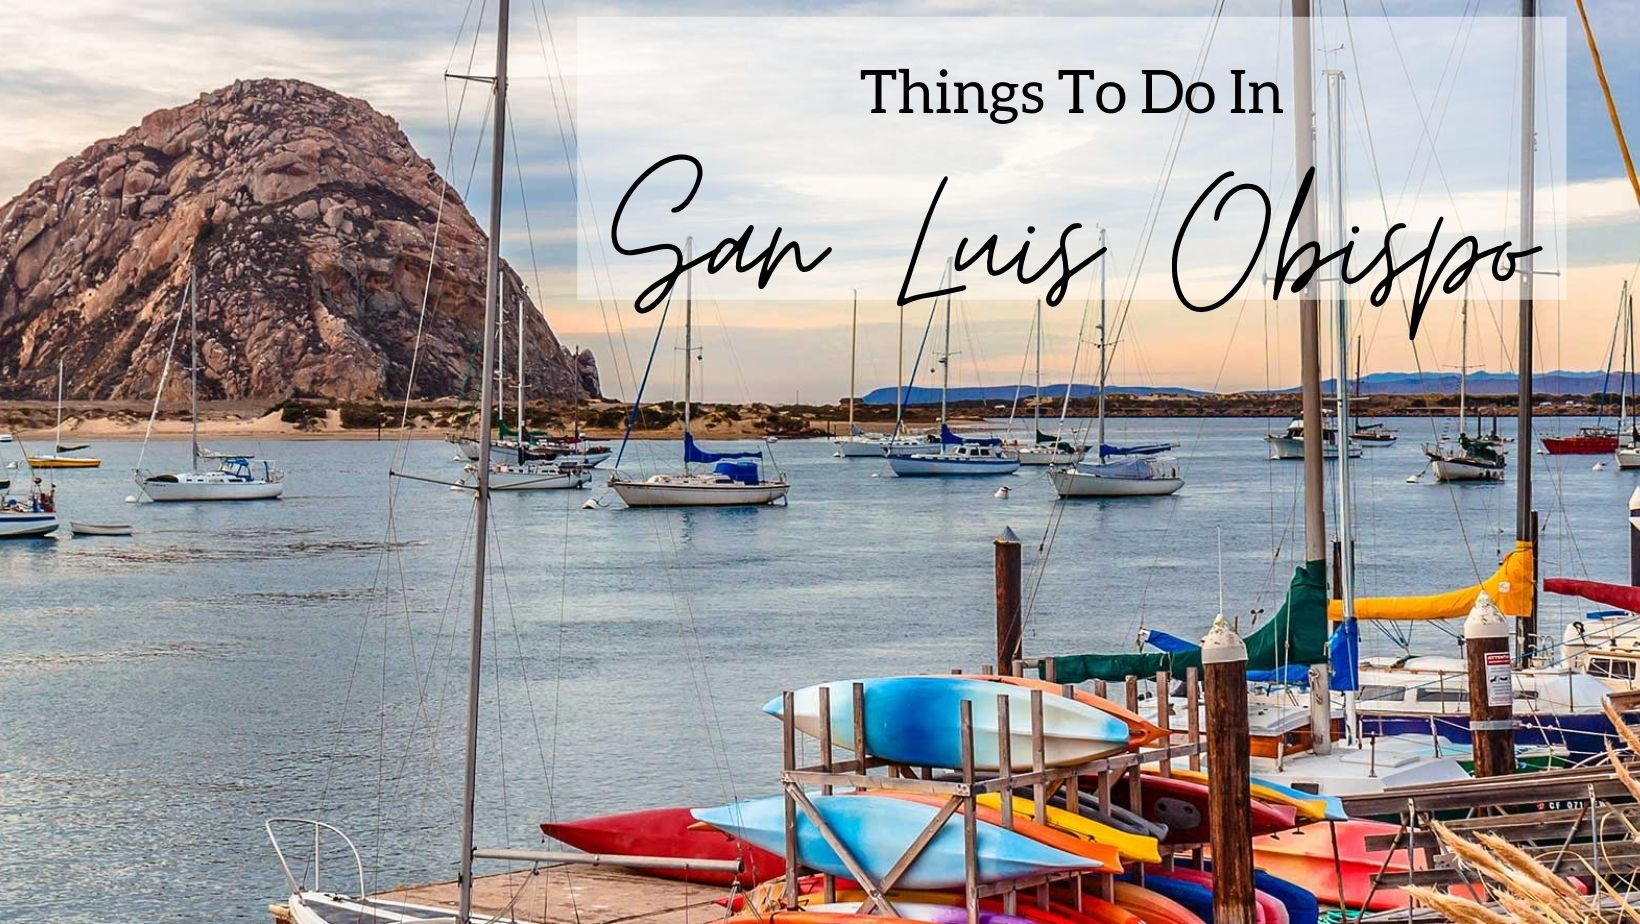 Things To Do In San Luis Obispo